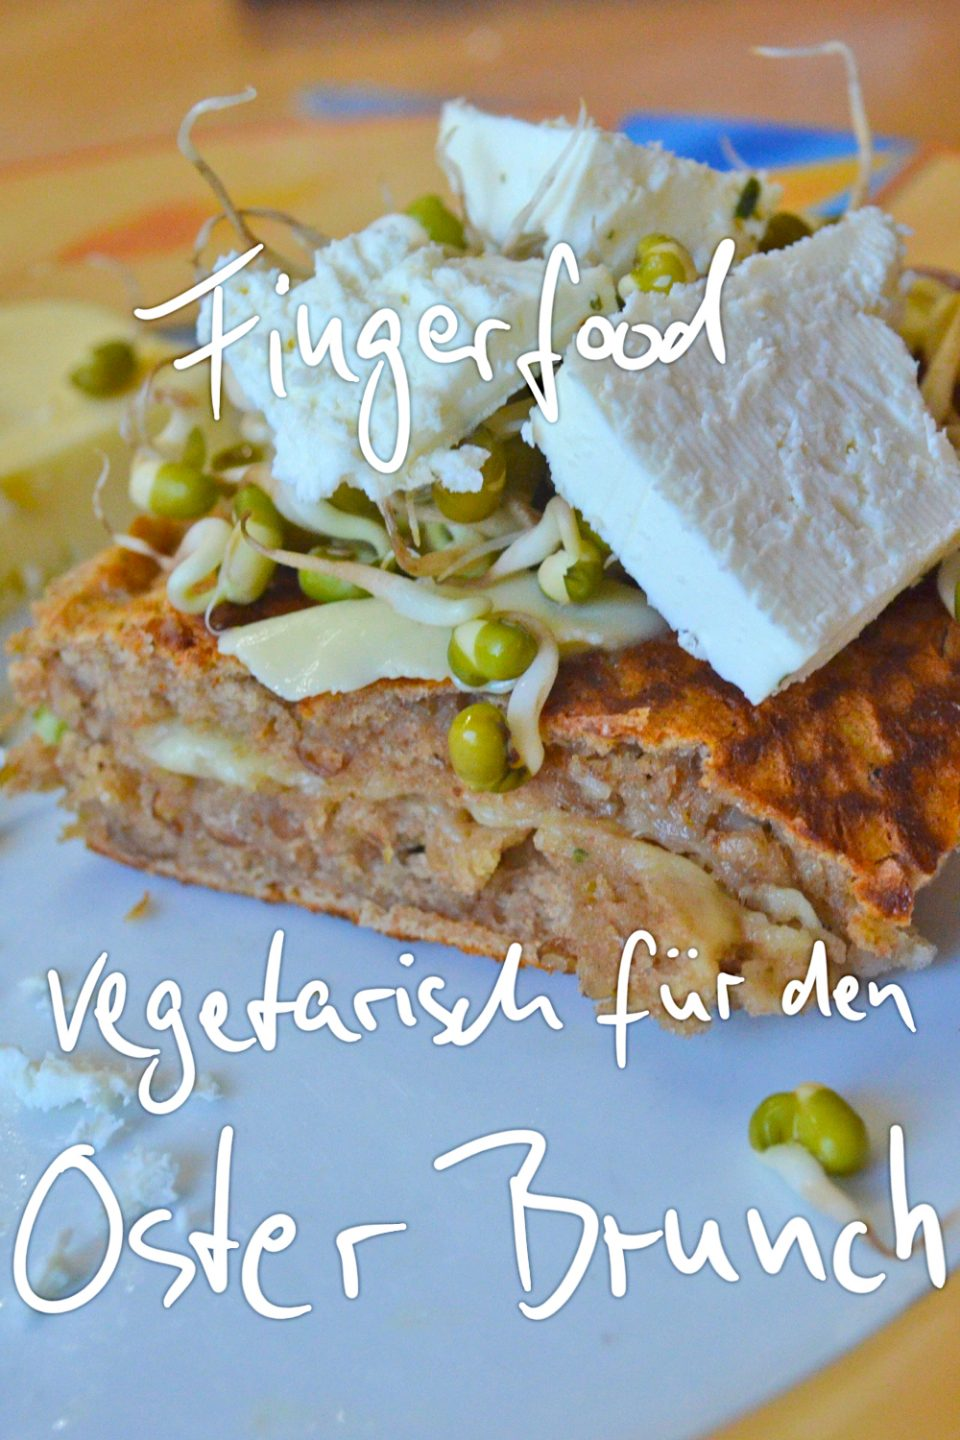 Sprossen Salat, Brot Fingerfood Osterbrunch